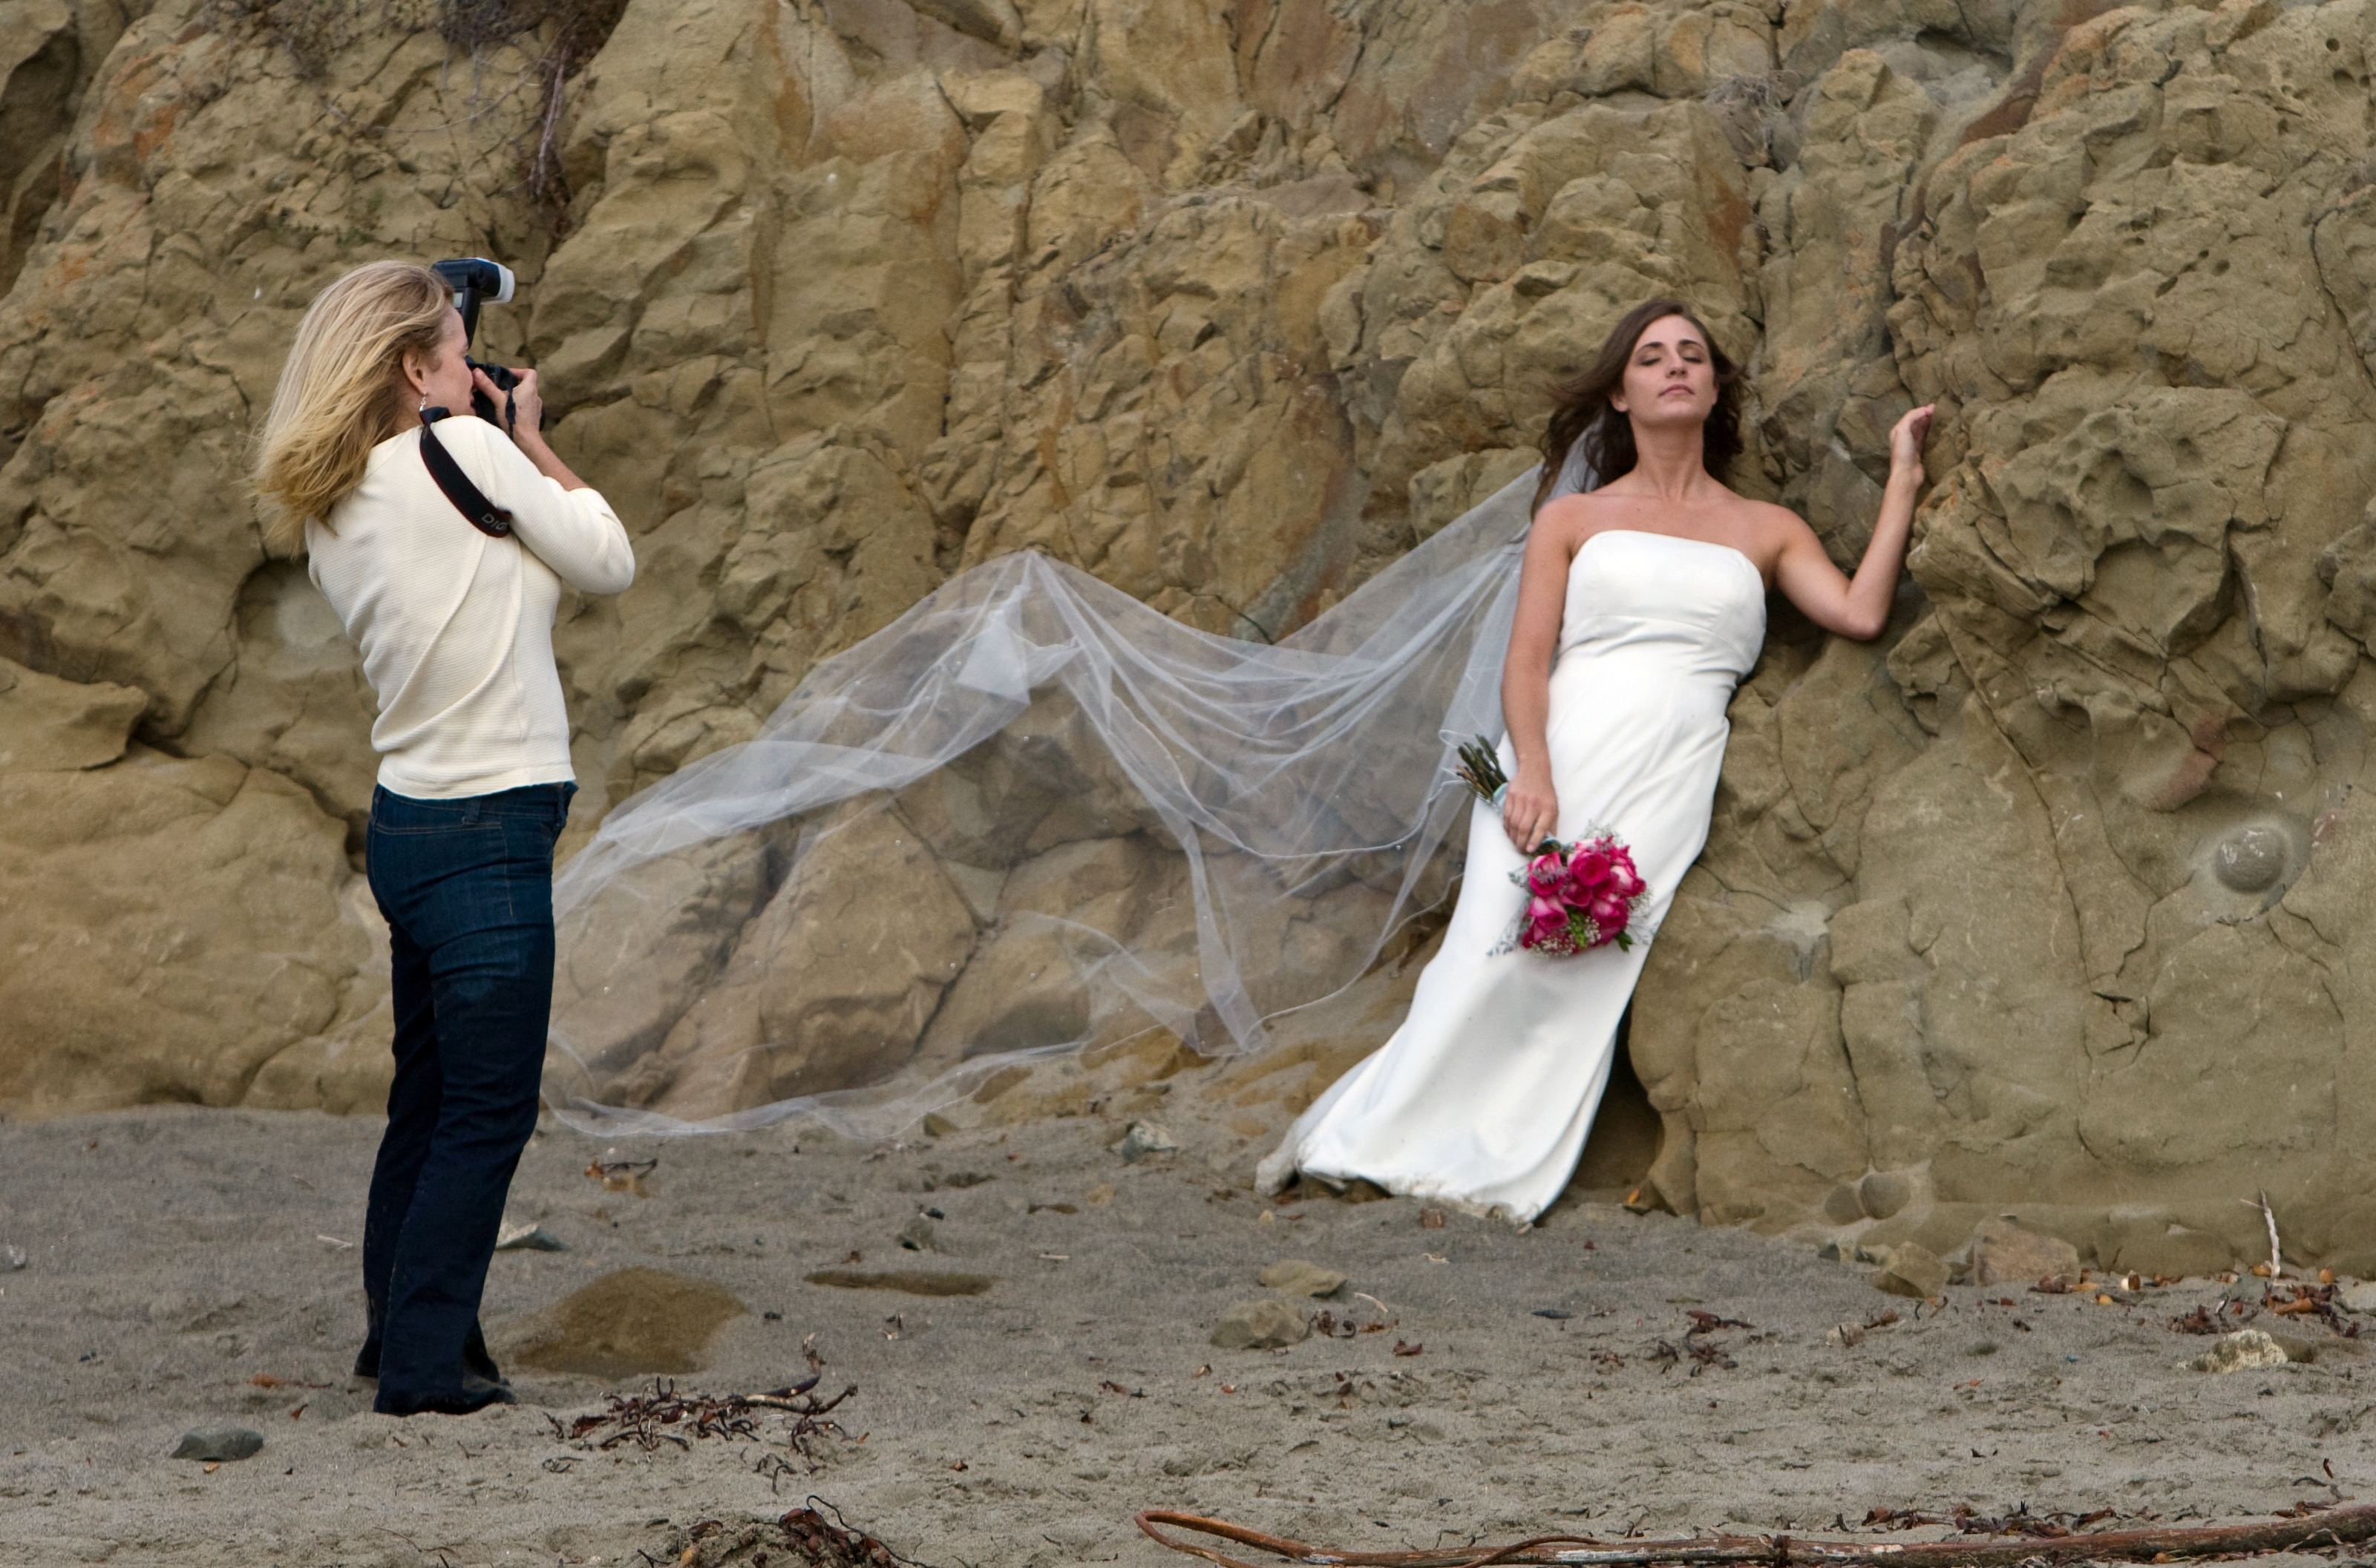 1 Of 4 Female Photographer From Phoenix Arizona Rehearses Taking A Critical Wedding Photo